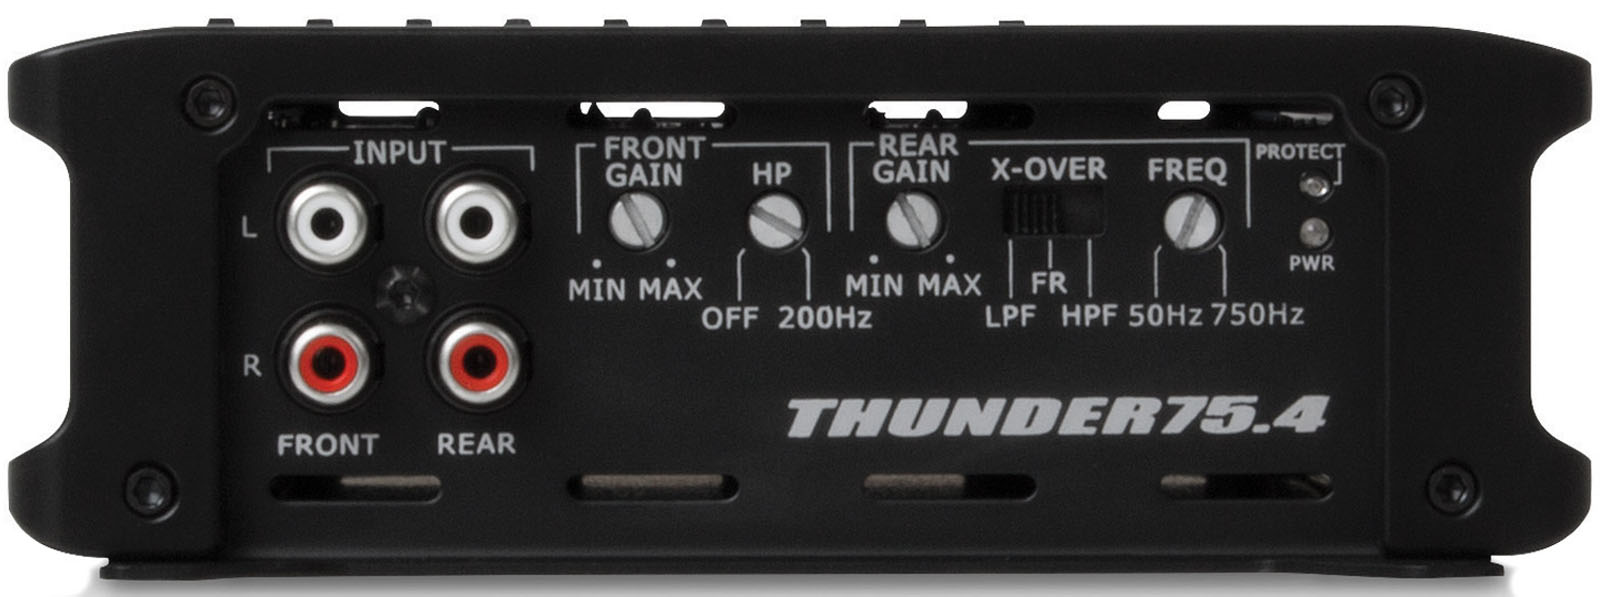 Car Amplifier Tuning And Features Mtx Audio Serious About Sound Amp Wiring Diagram Thunder754 4 Channel